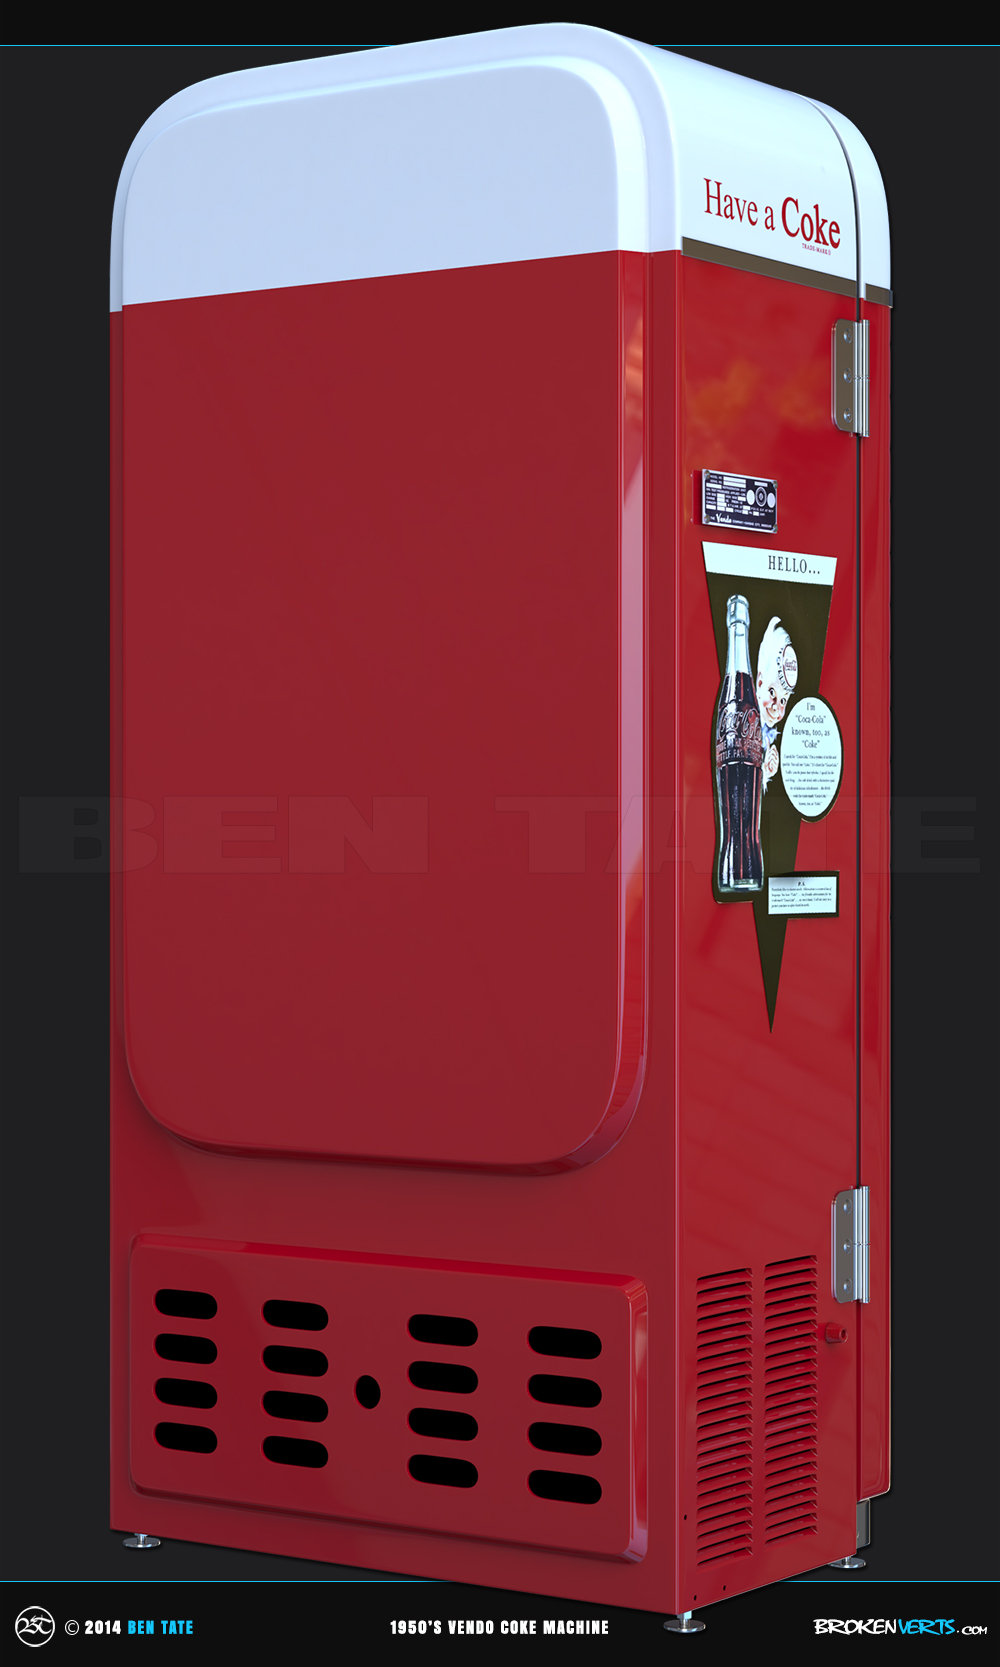 1950s Vendo Coke Vending Machine  3D Model | Ben Tate | 3ds Max V-Ray Photoshop |3d CG VFX